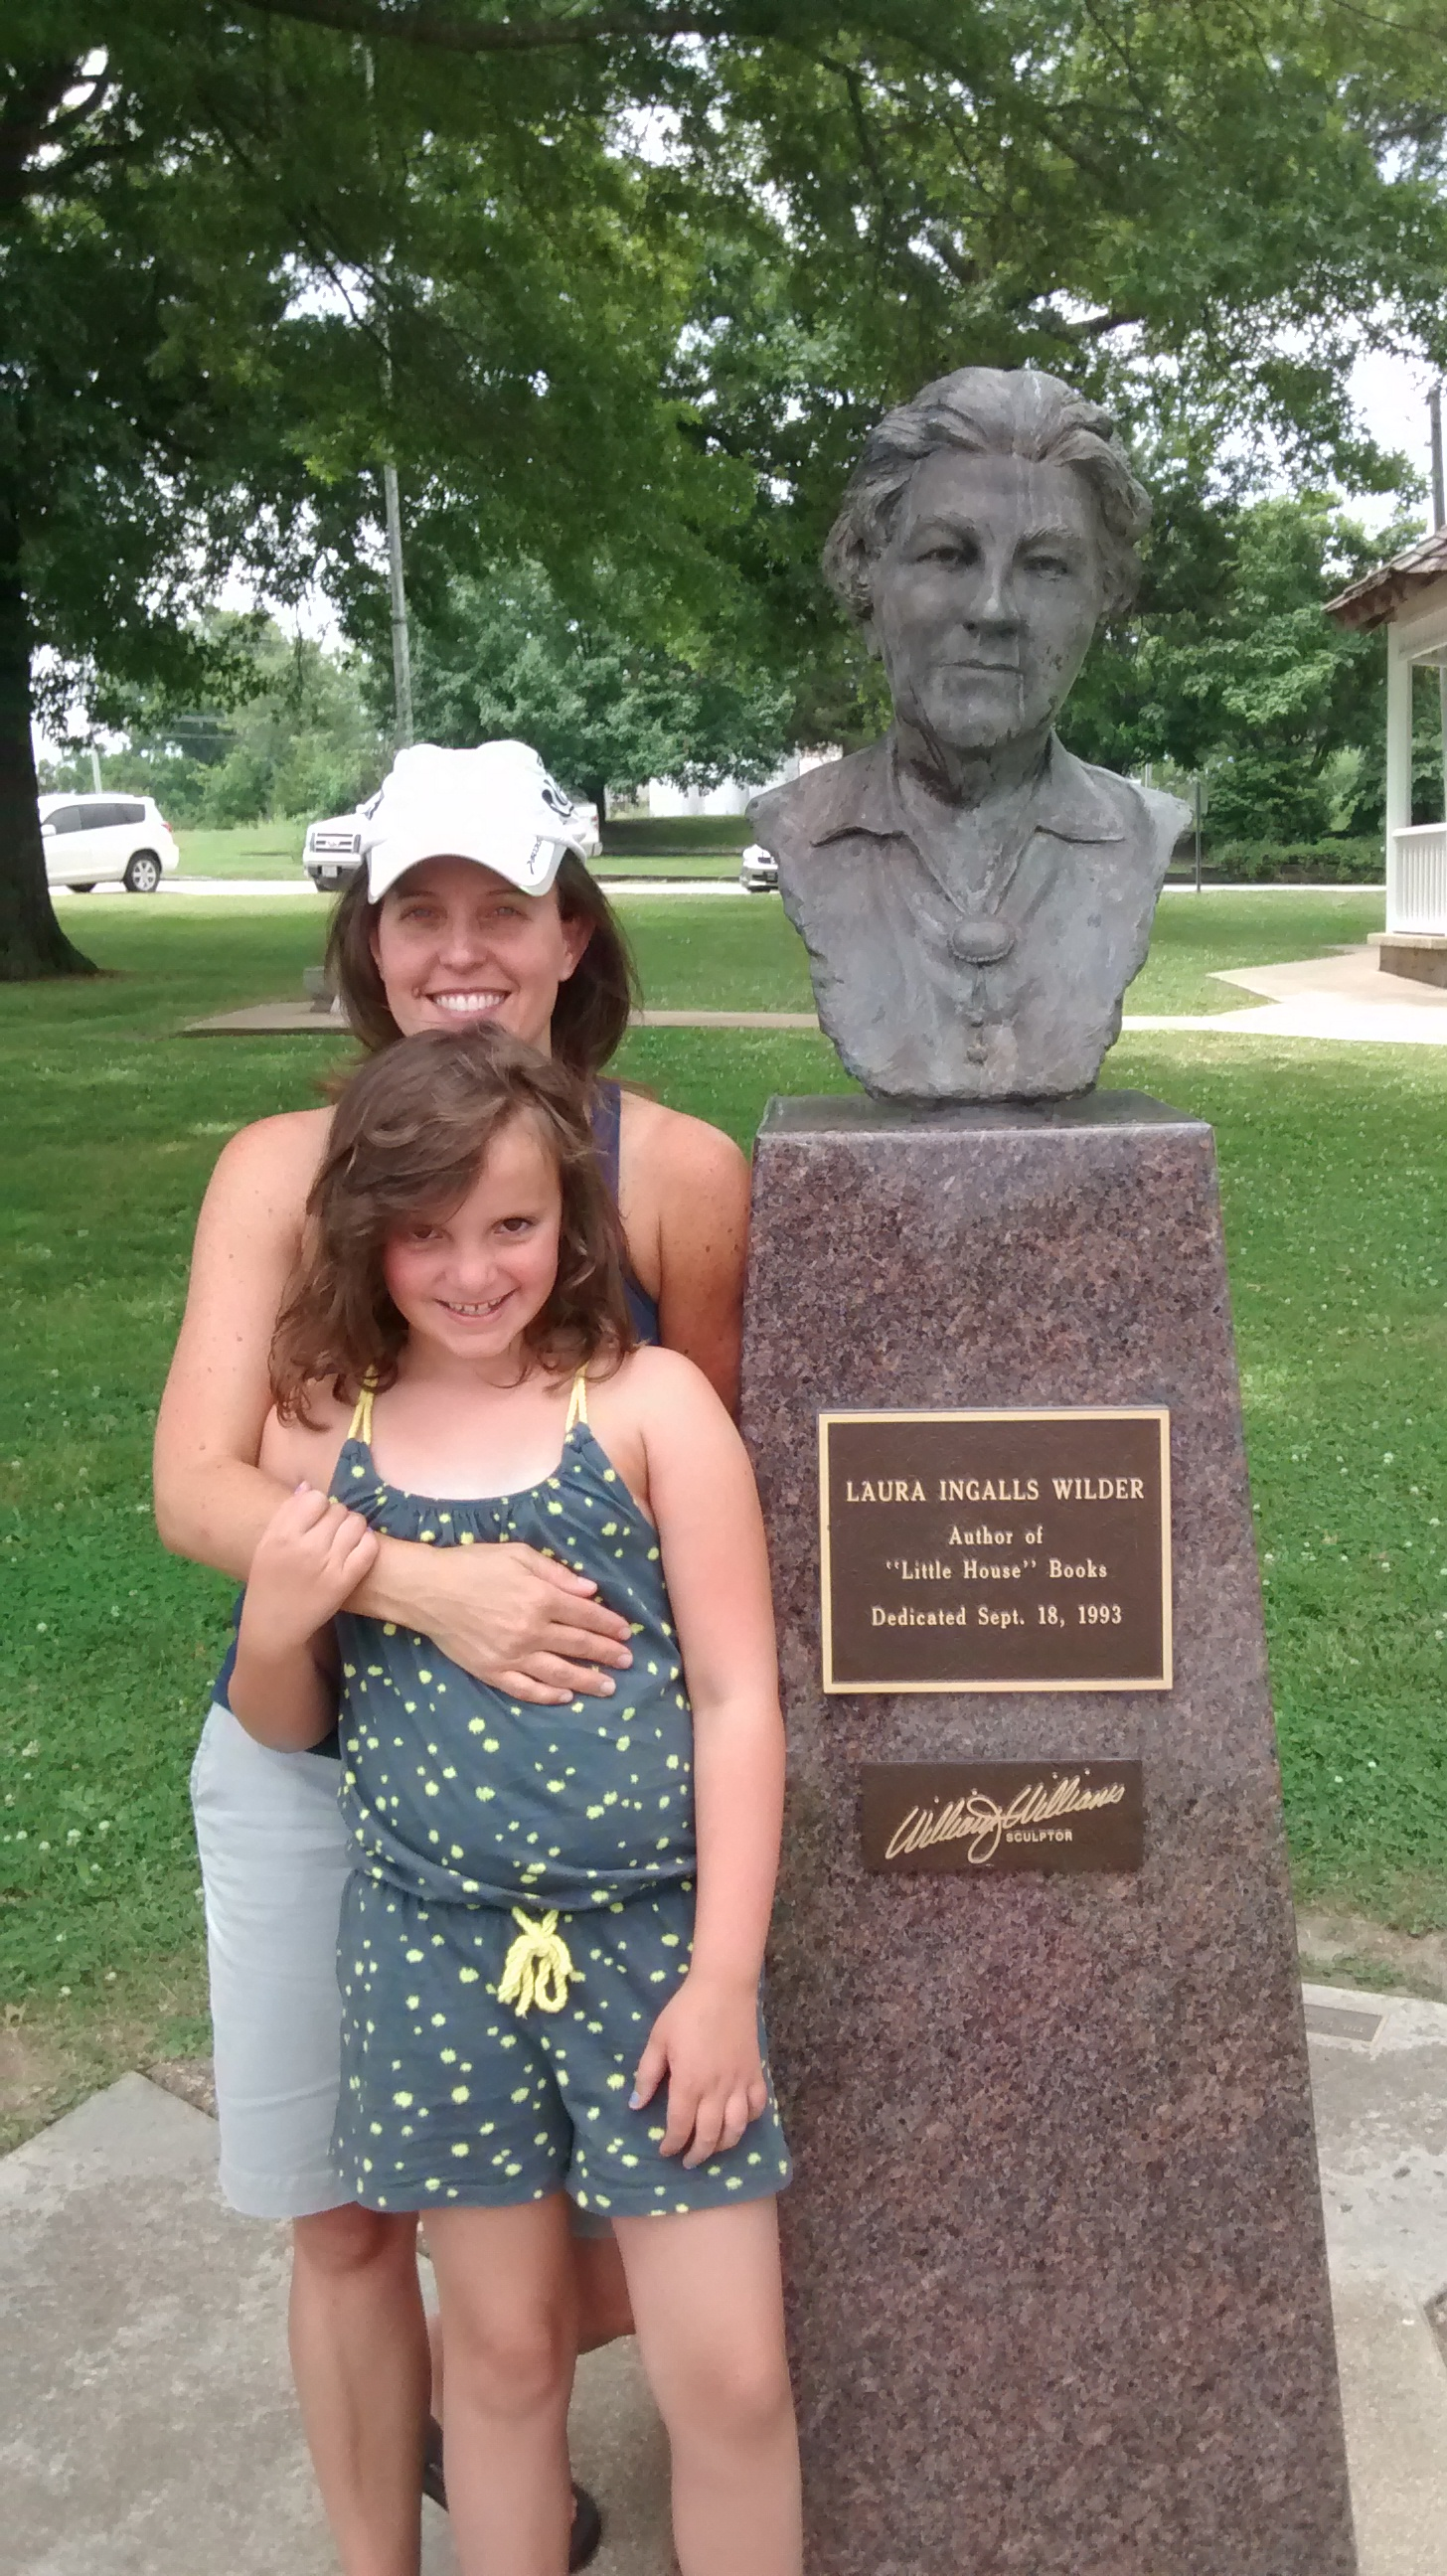 We did take one picture in front of the bust of Laura in the town center of Mansfield.